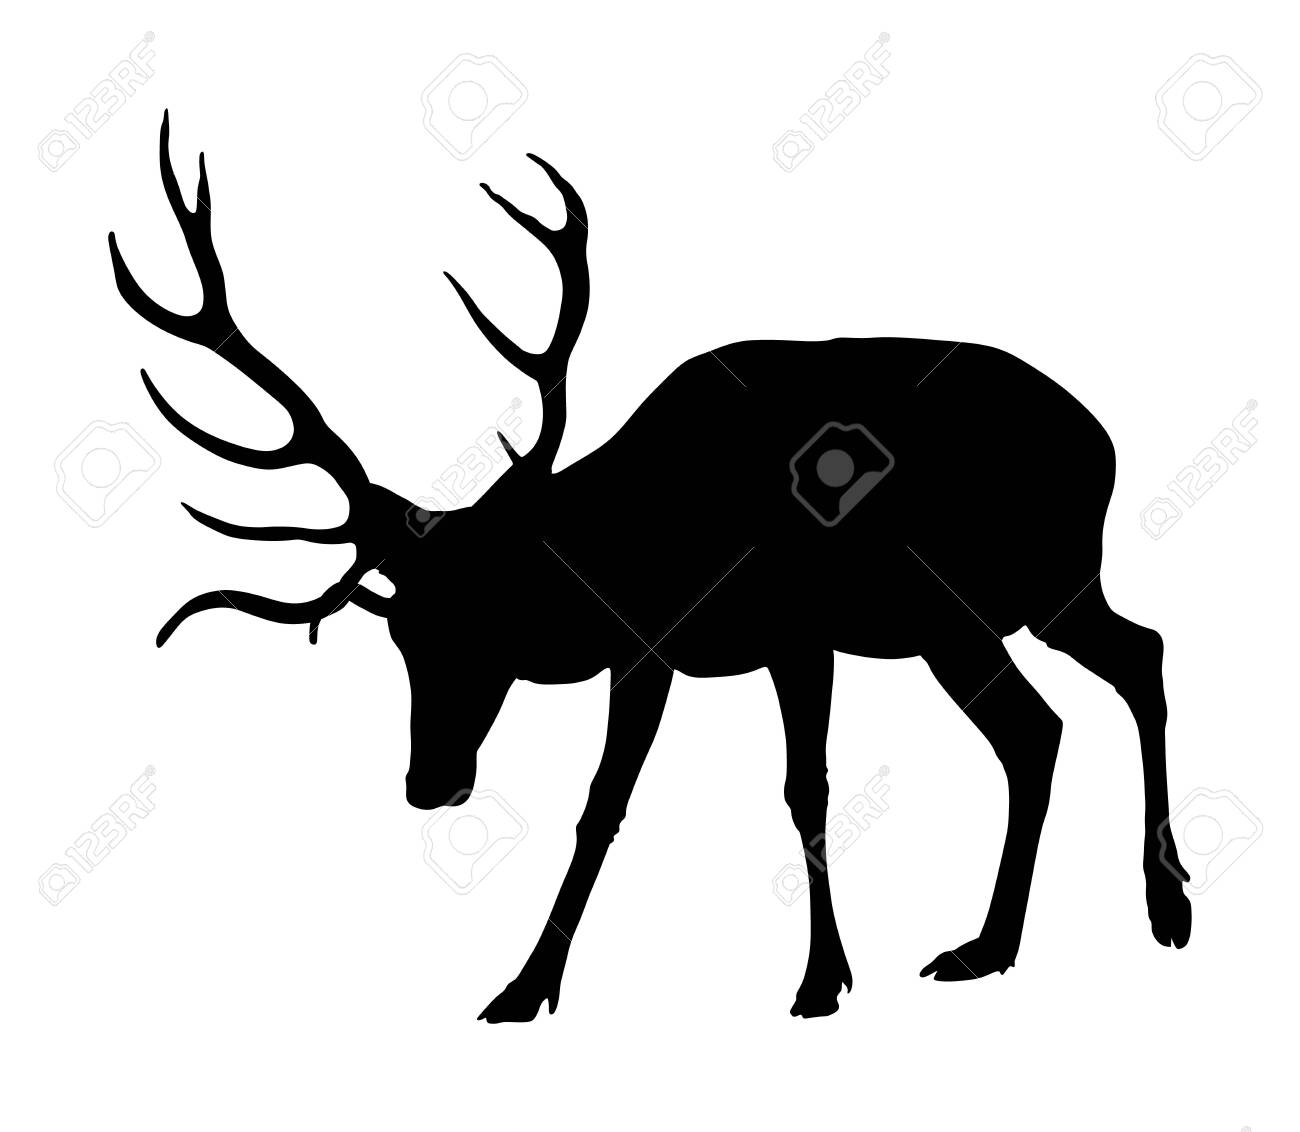 Deer vector silhouette isolated on white background. Reindeer, proud Noble Deer male in forest or zoo. Powerful buck with huge neck and antlers standing. Red deer grazing grass. - 141460097